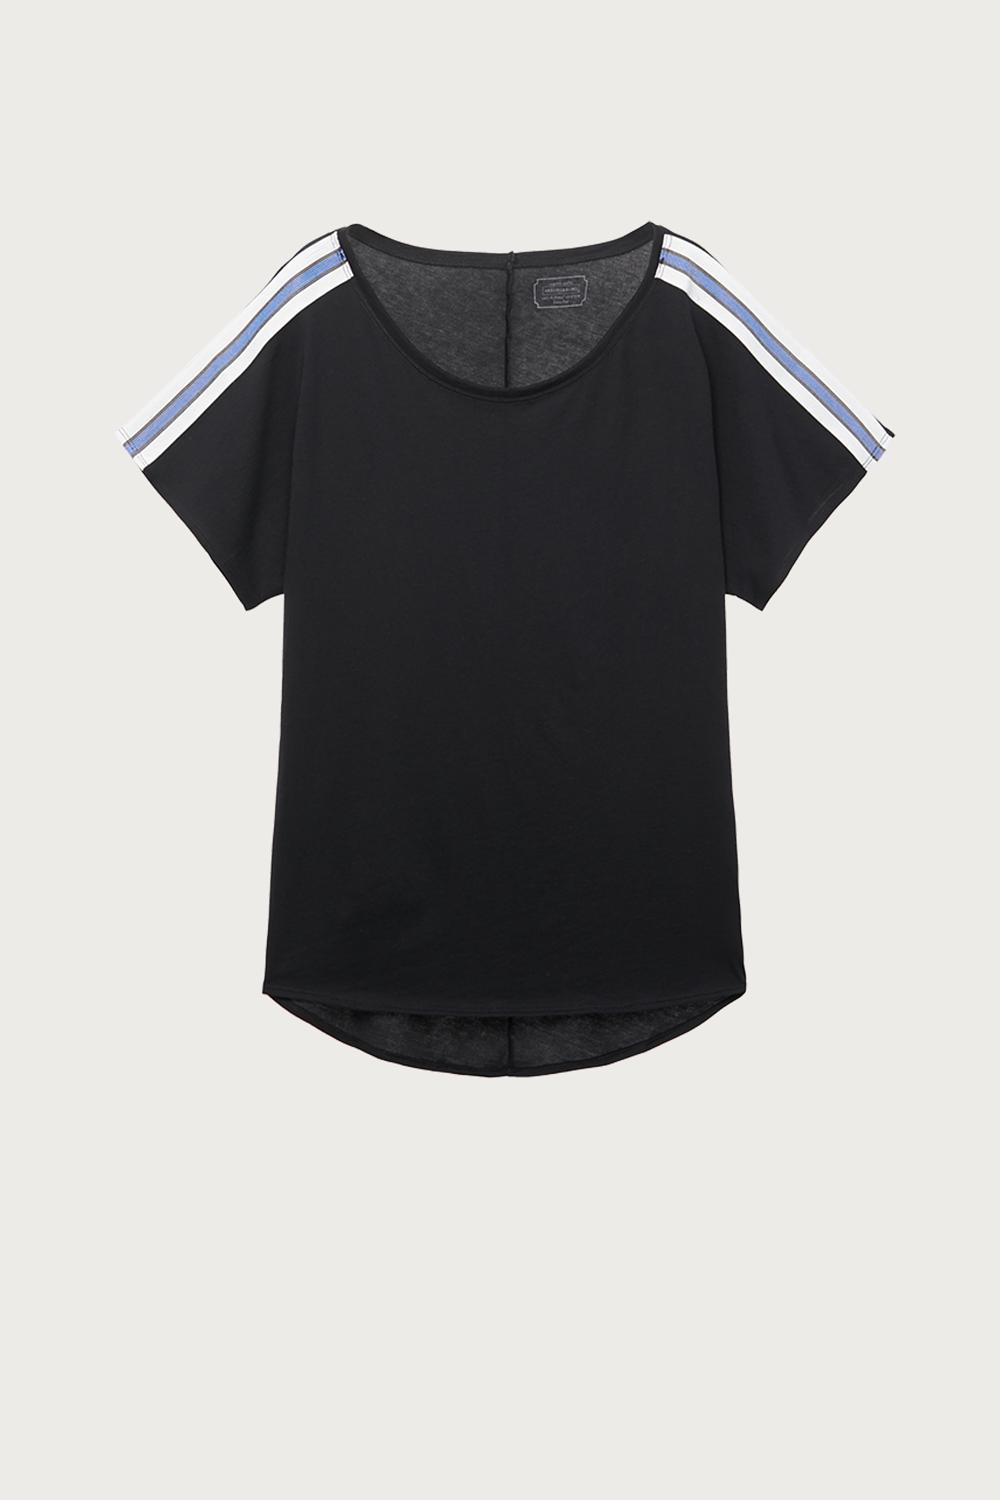 Extrafine Supima Cotton t-shirt with stripes